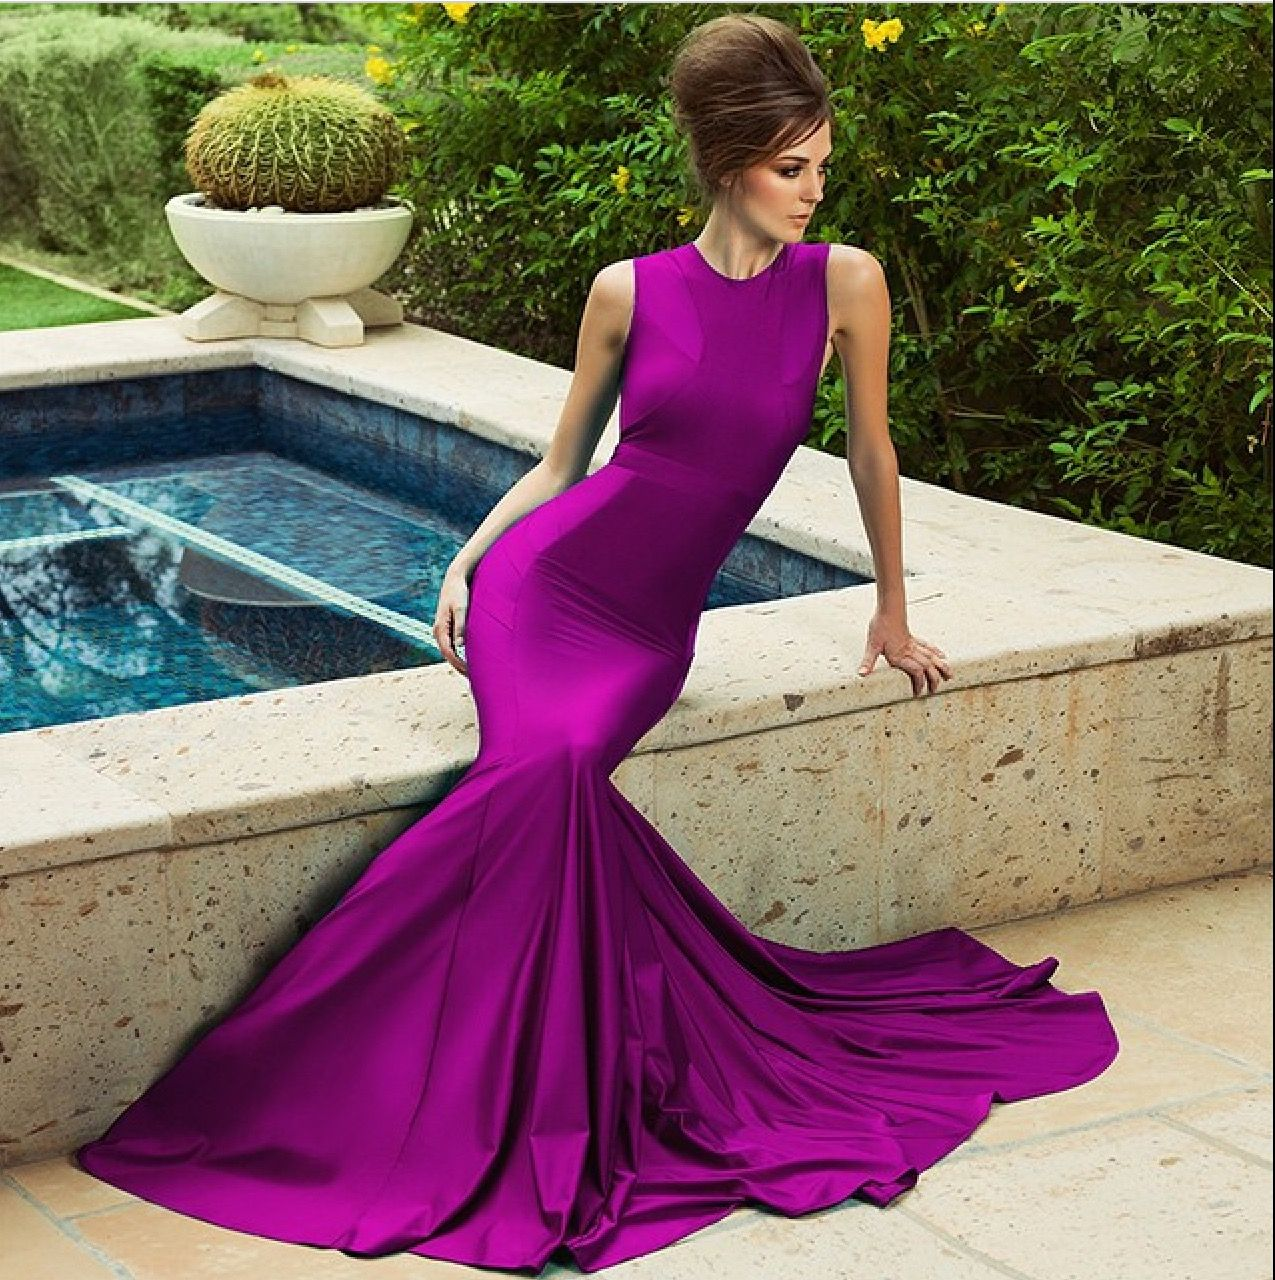 Walter Collection - Serenity gown | Prom 2018!!! | Pinterest